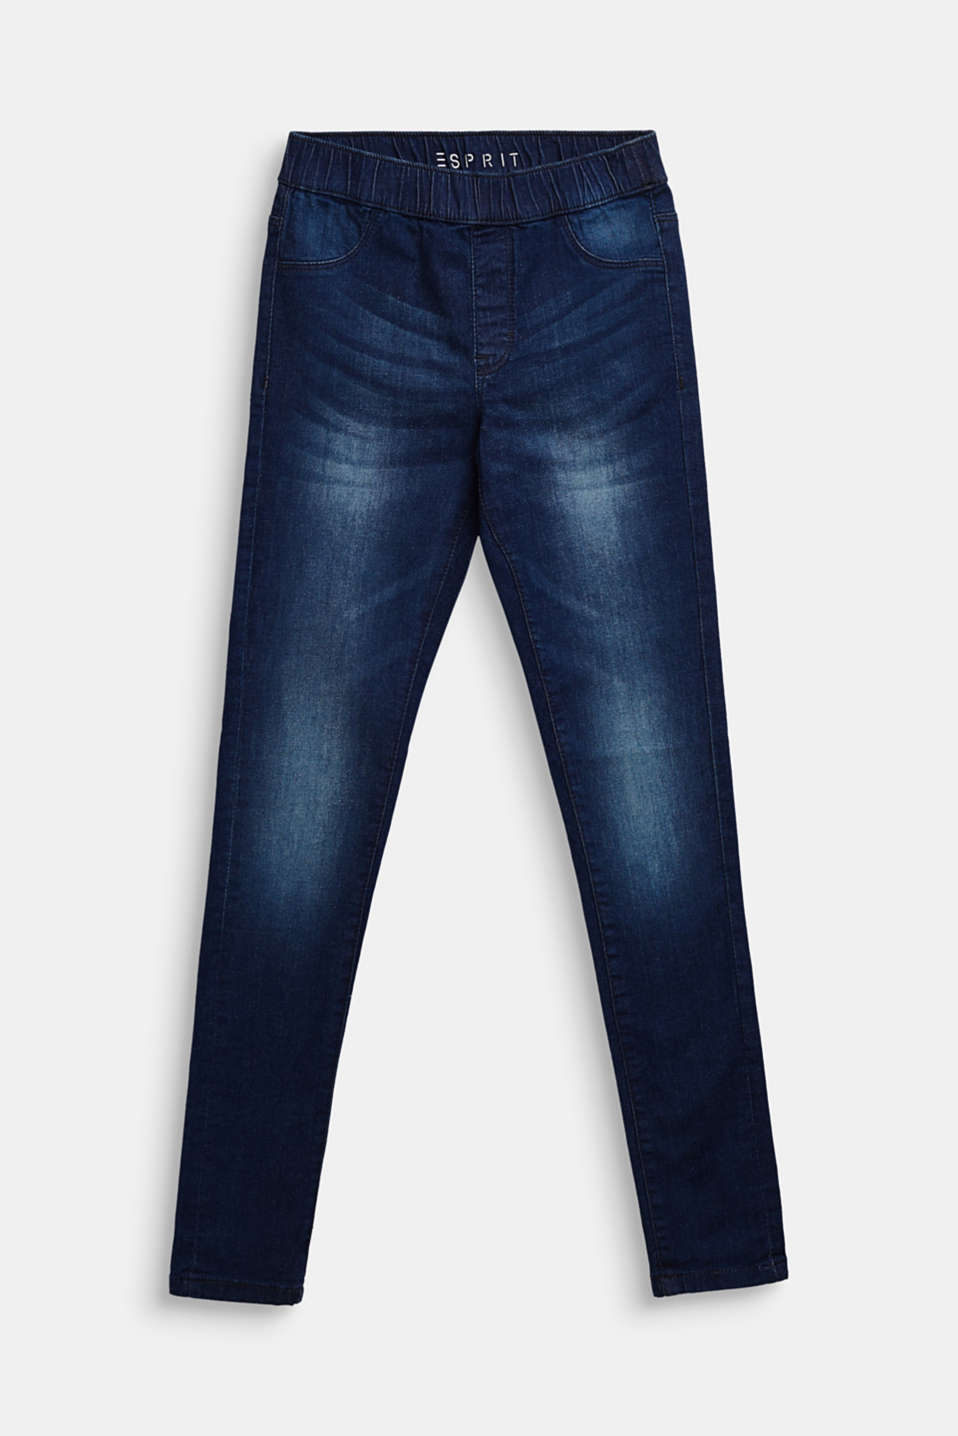 Esprit - Jegging met superstretch en washed-outlook